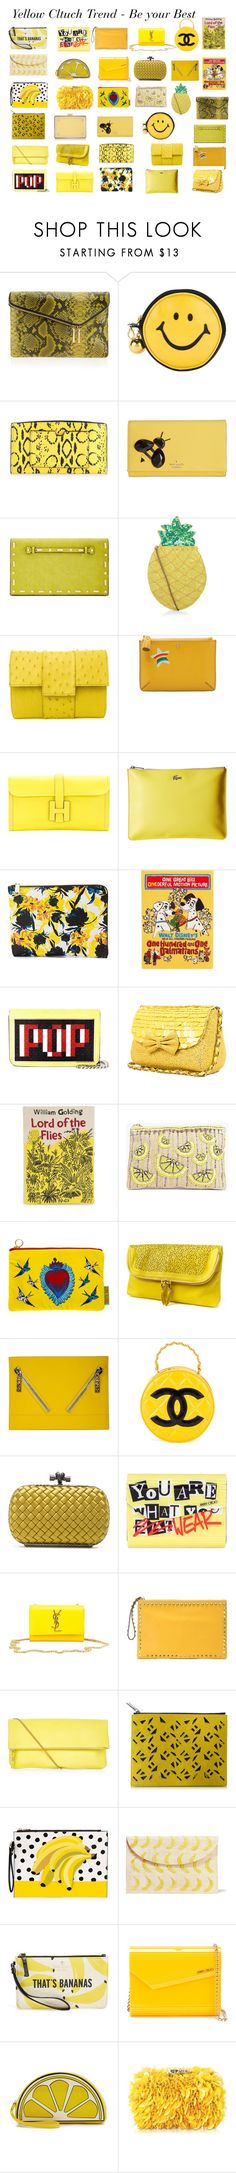 """""""Yellow Clutch Trend"""" by gabriela2105 ❤ liked on Polyvore featuring Henri Bendel, Reed, Kate Spade, INC International Concepts, New Look, Anya Hindmarch, Hermès, Lacoste, Ivanka Trump and Olympia Le-Tan"""